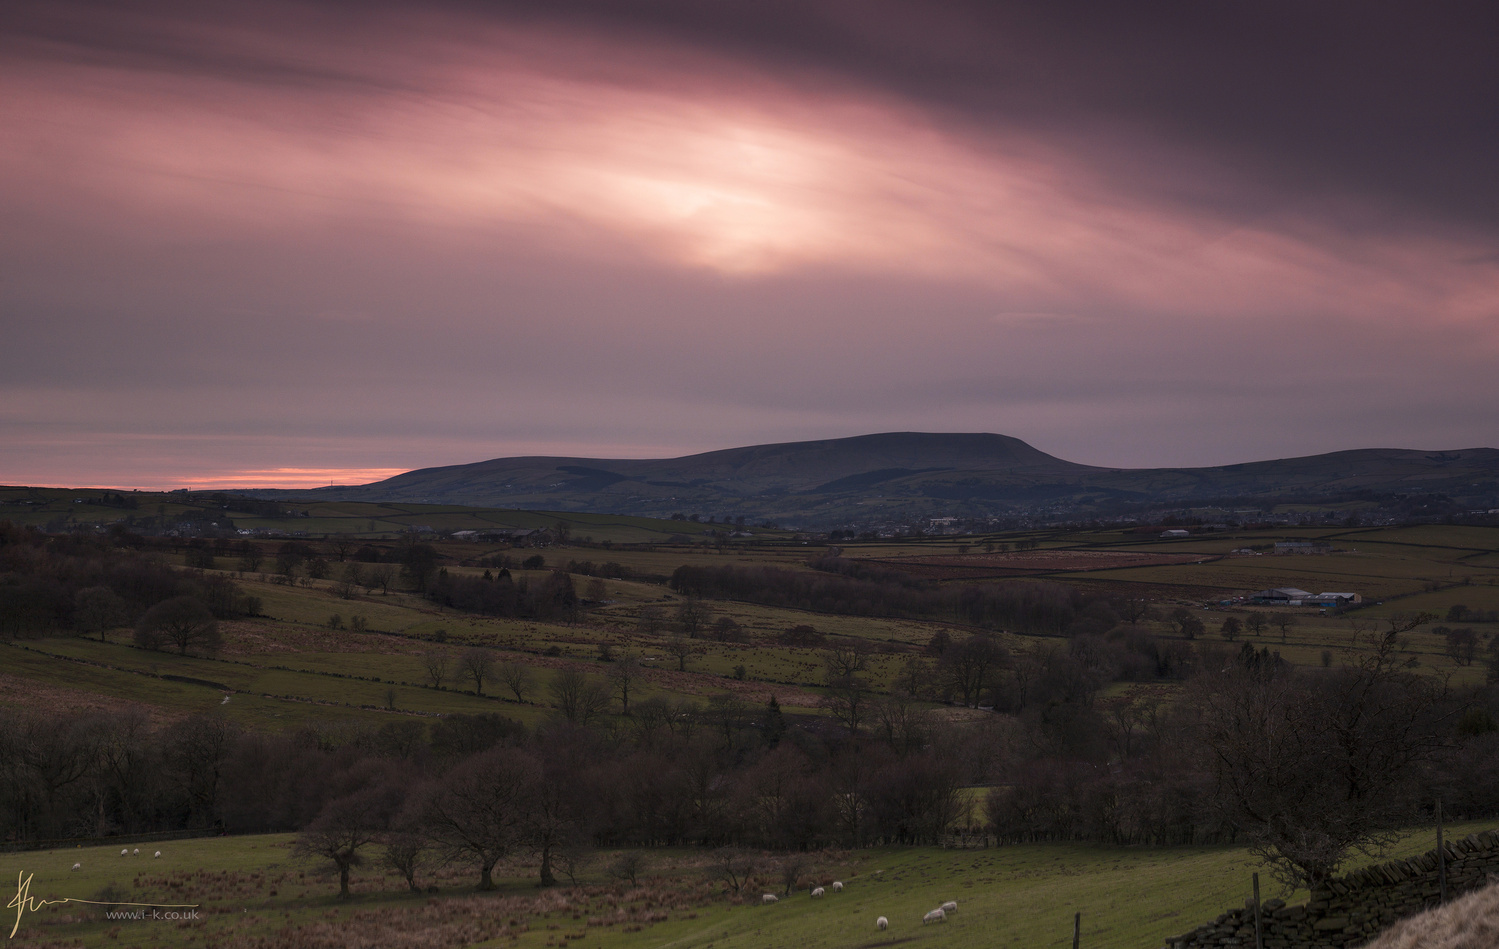 Sunset over Yorkshire by Imran Khan